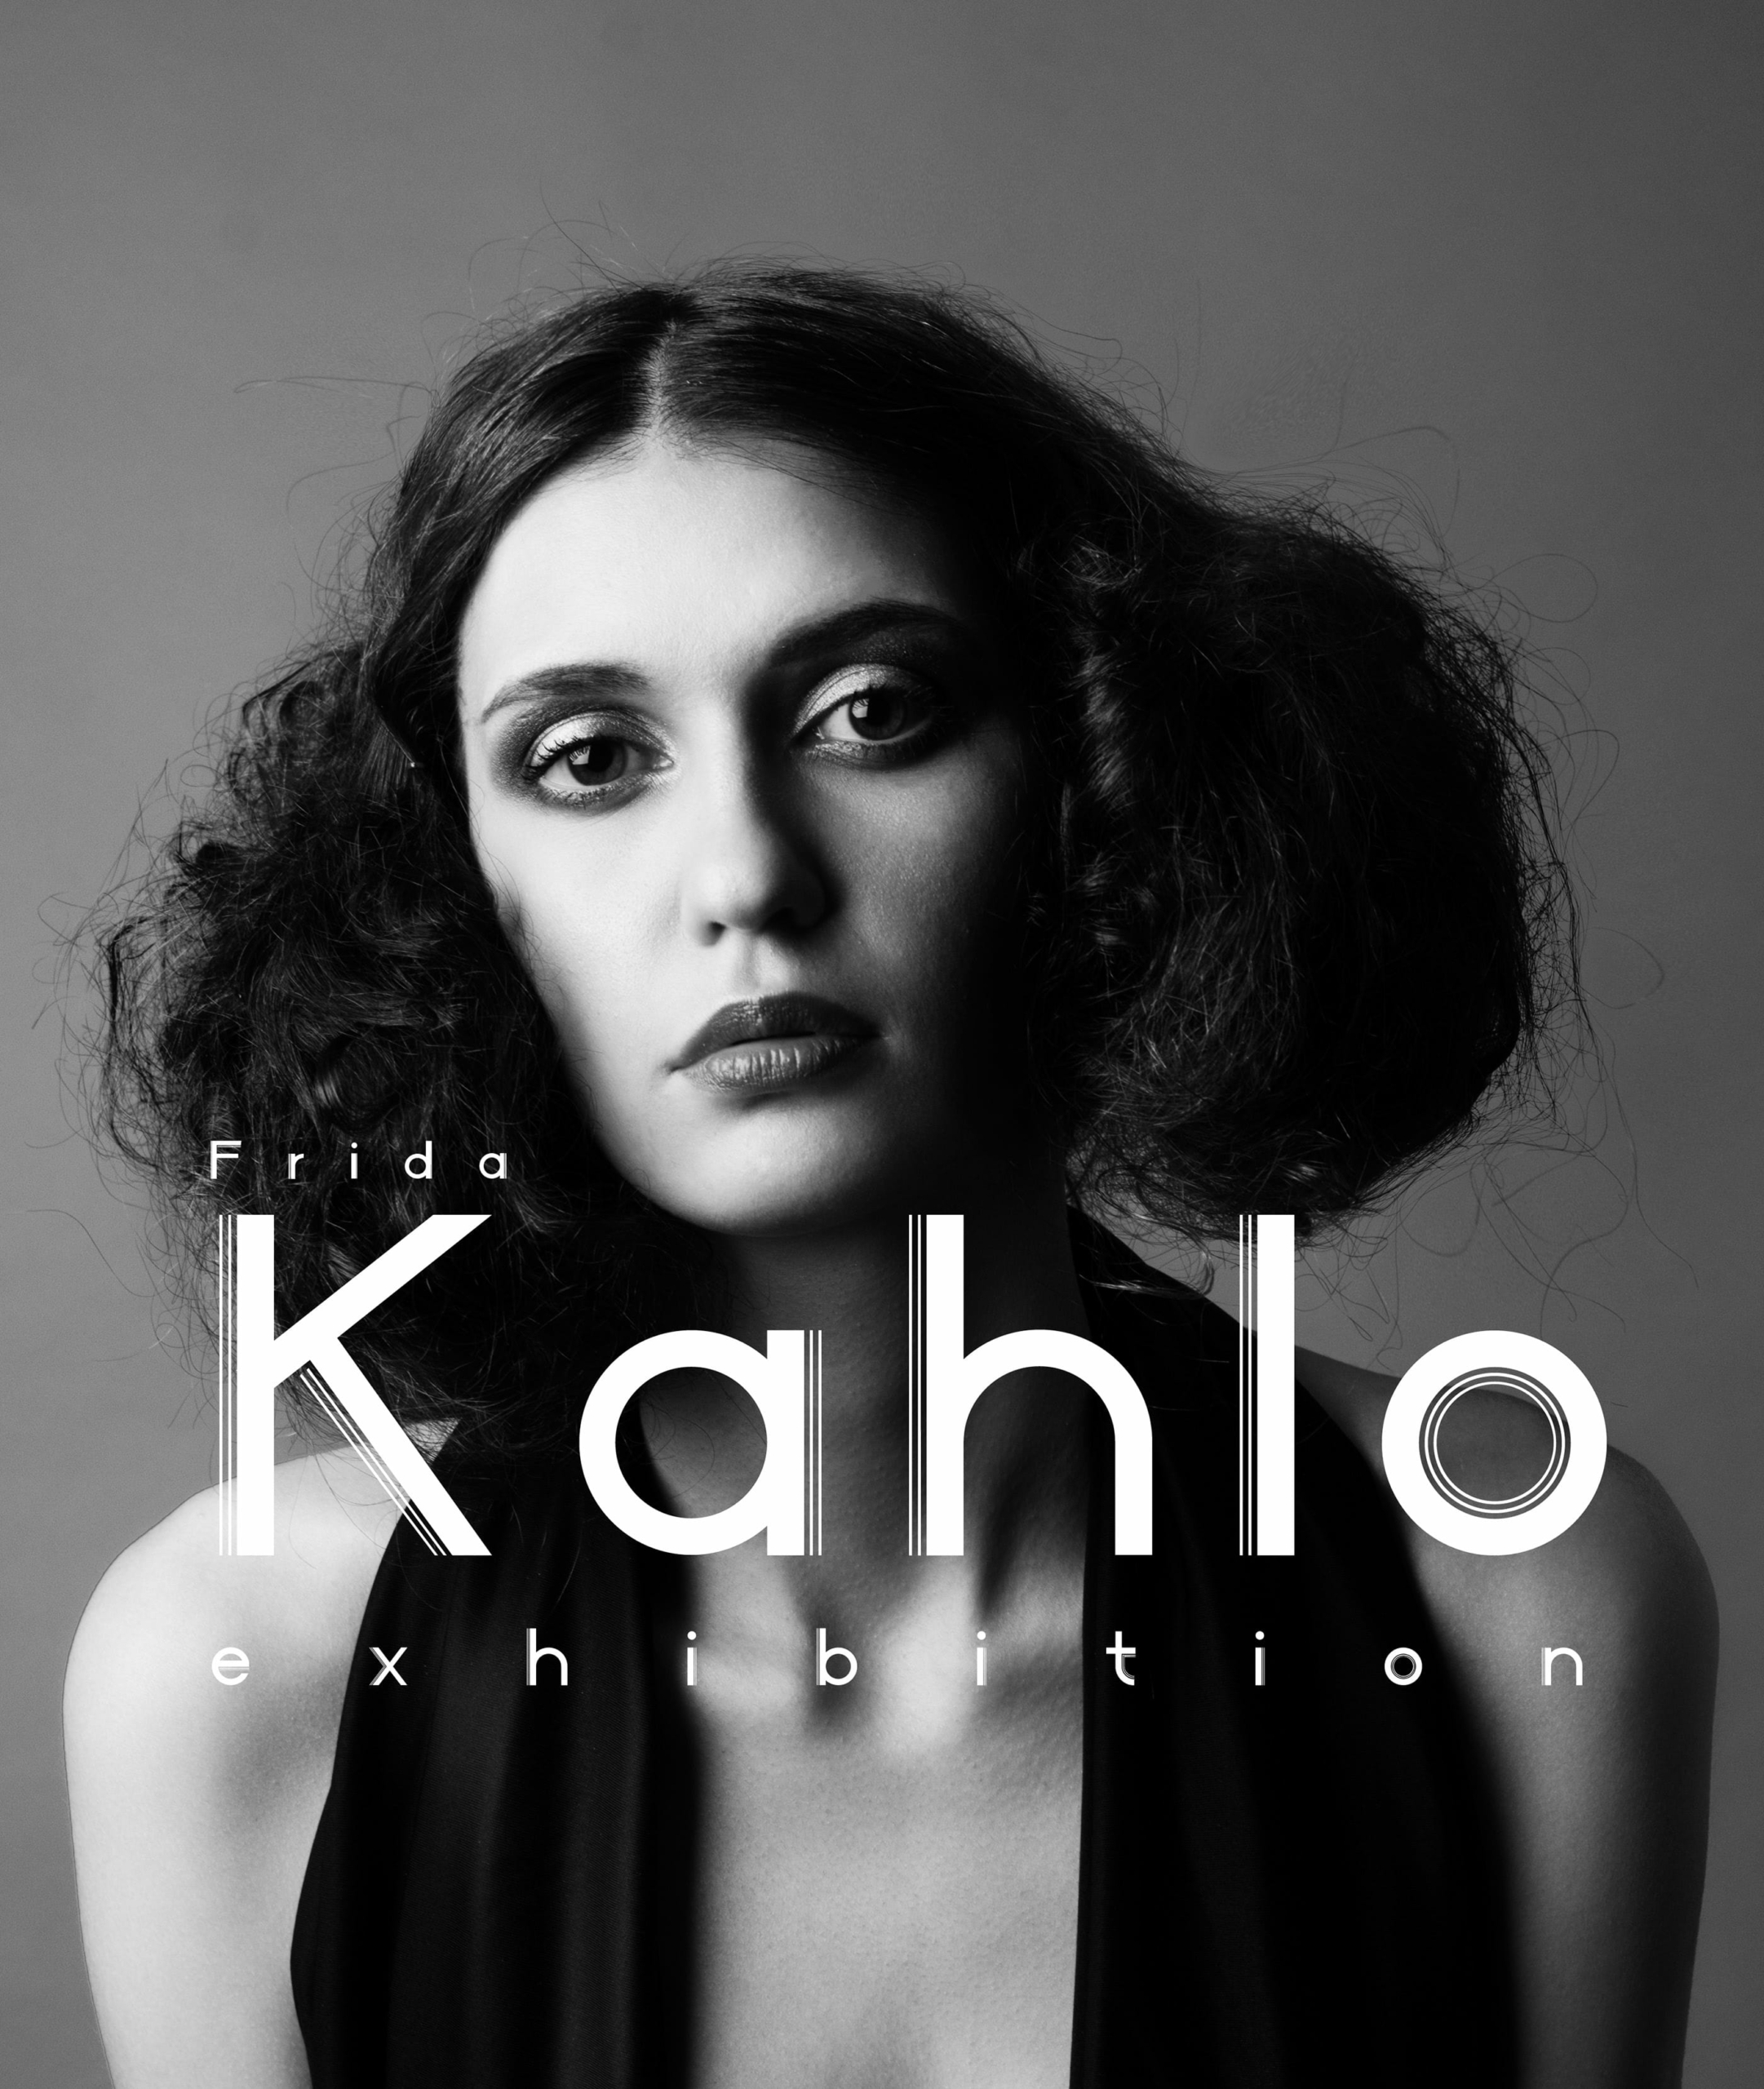 kahlo influenced poster